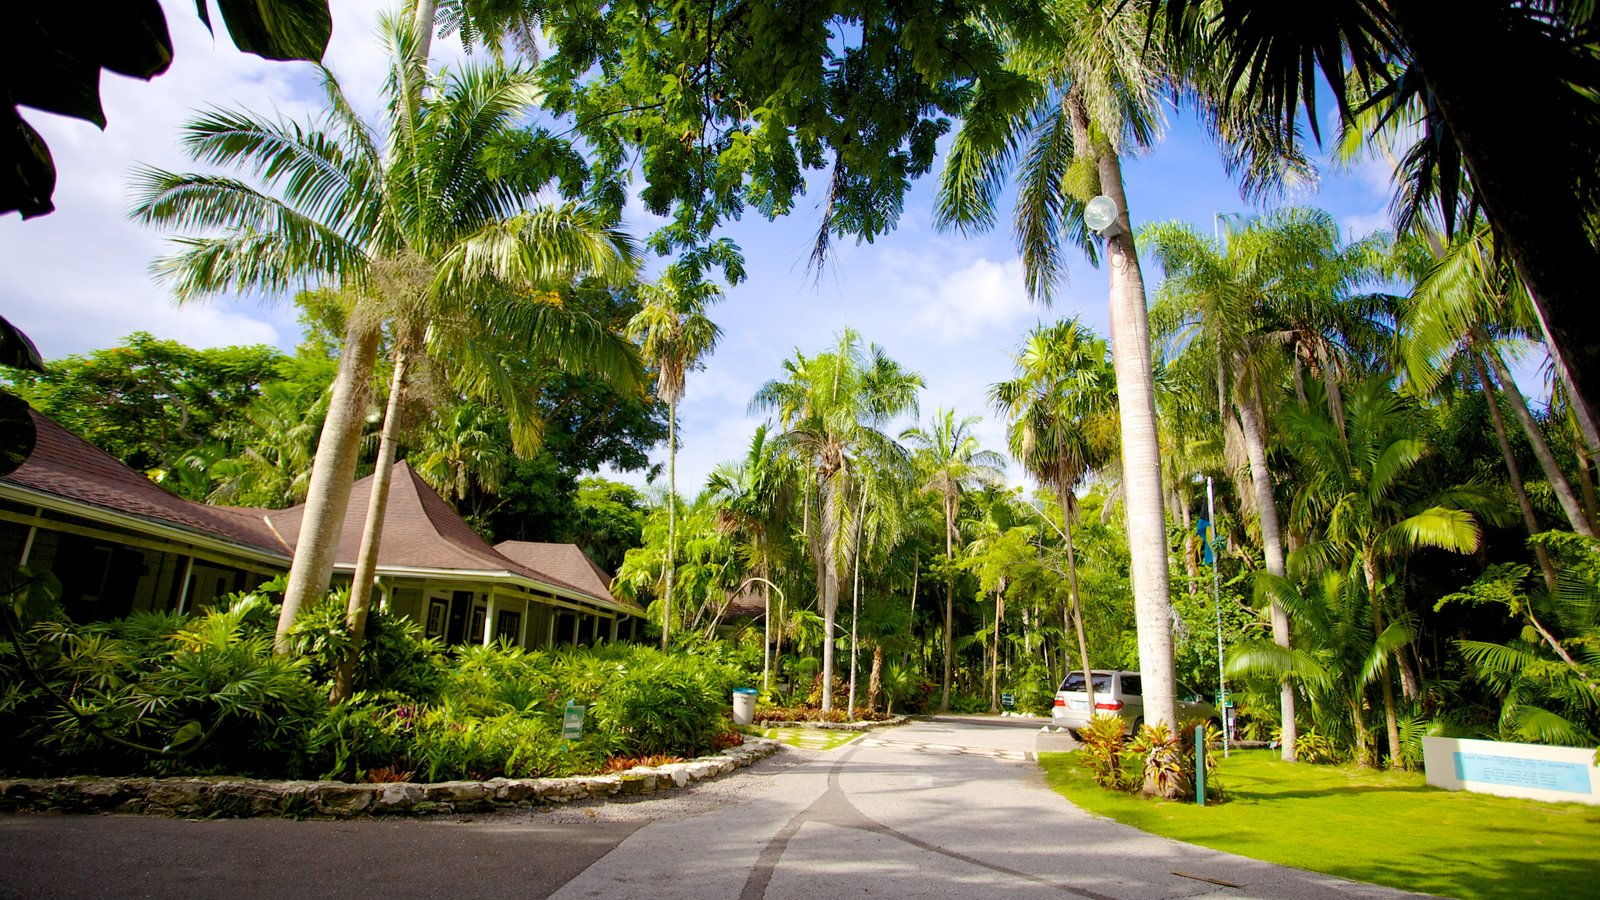 The Retreat Garden National Park Featuring A House, A Garden And Tropical  Scenes